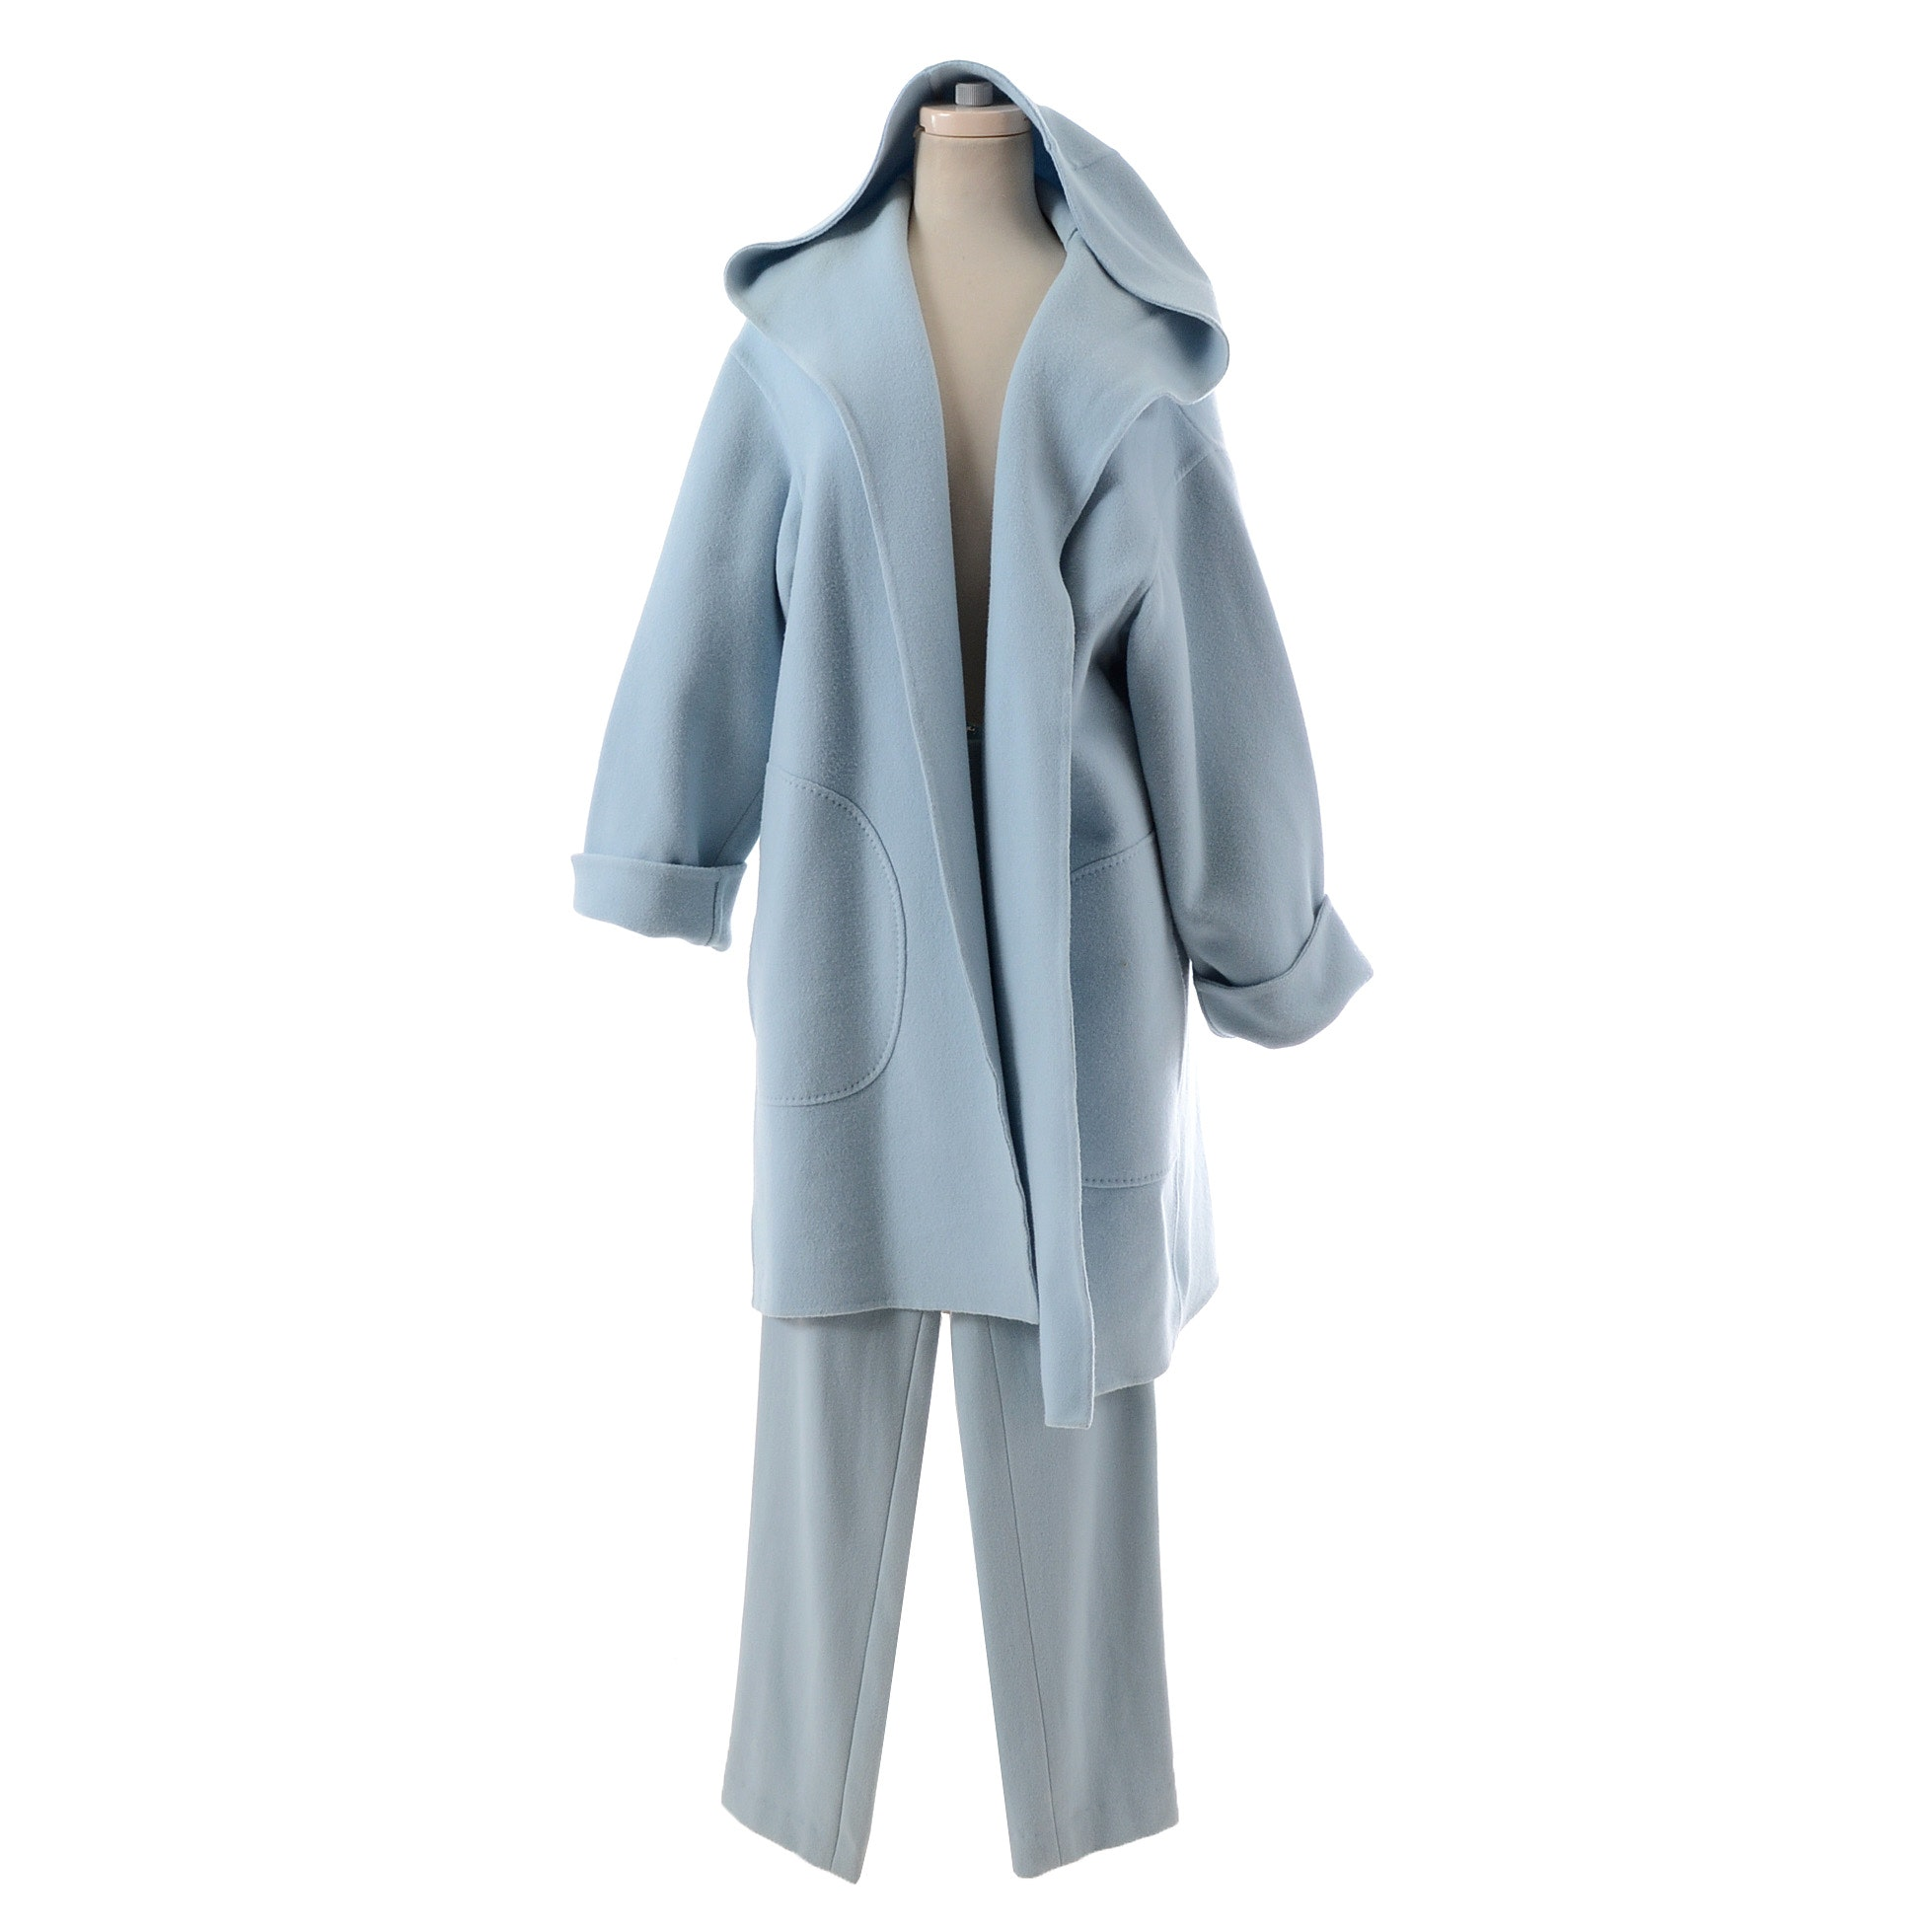 Ralph Lauren Collection Powder Blue Wool/Cashmere and Angora Blend Open Front Coat with Matching 100% Cashmere Pants